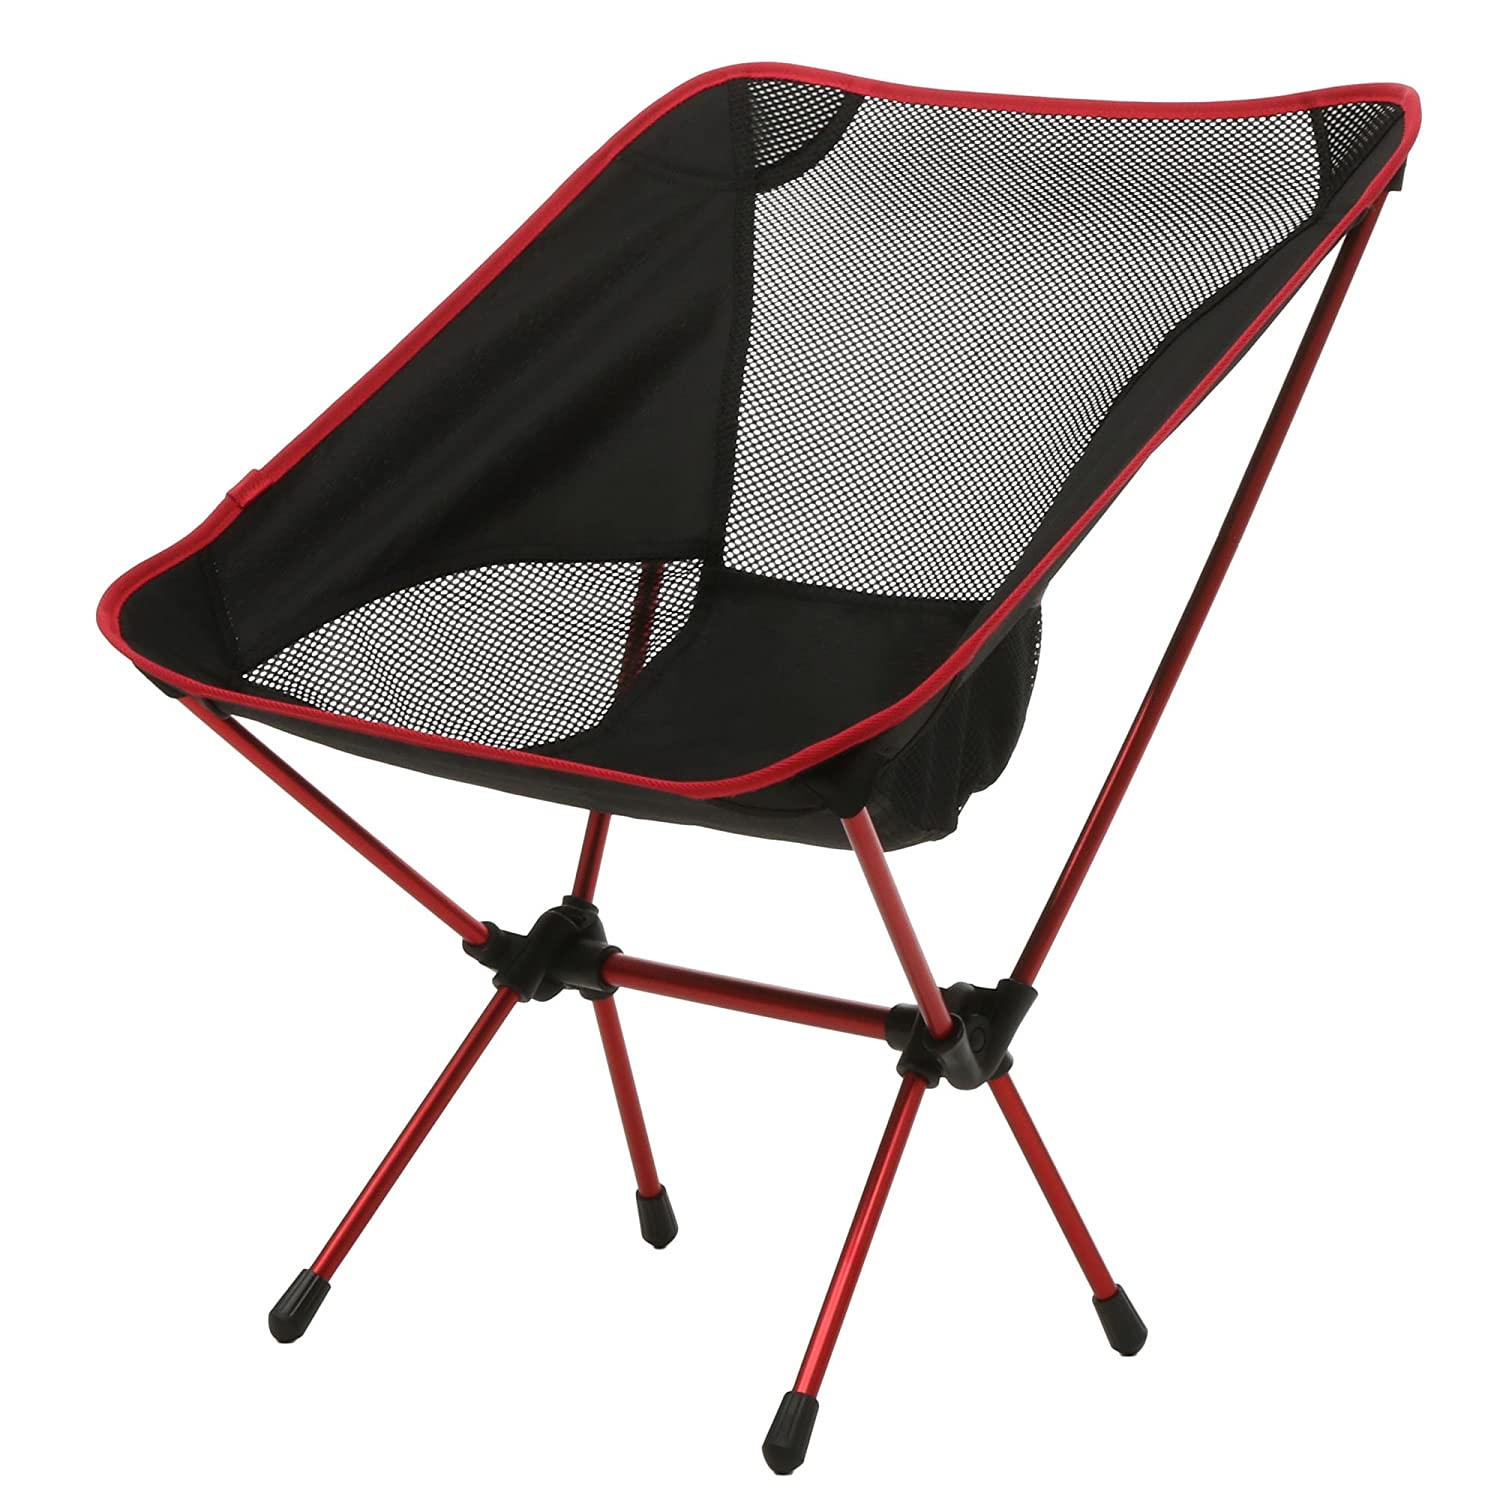 Ancheer Lightweight Portable Folding Ground Chair